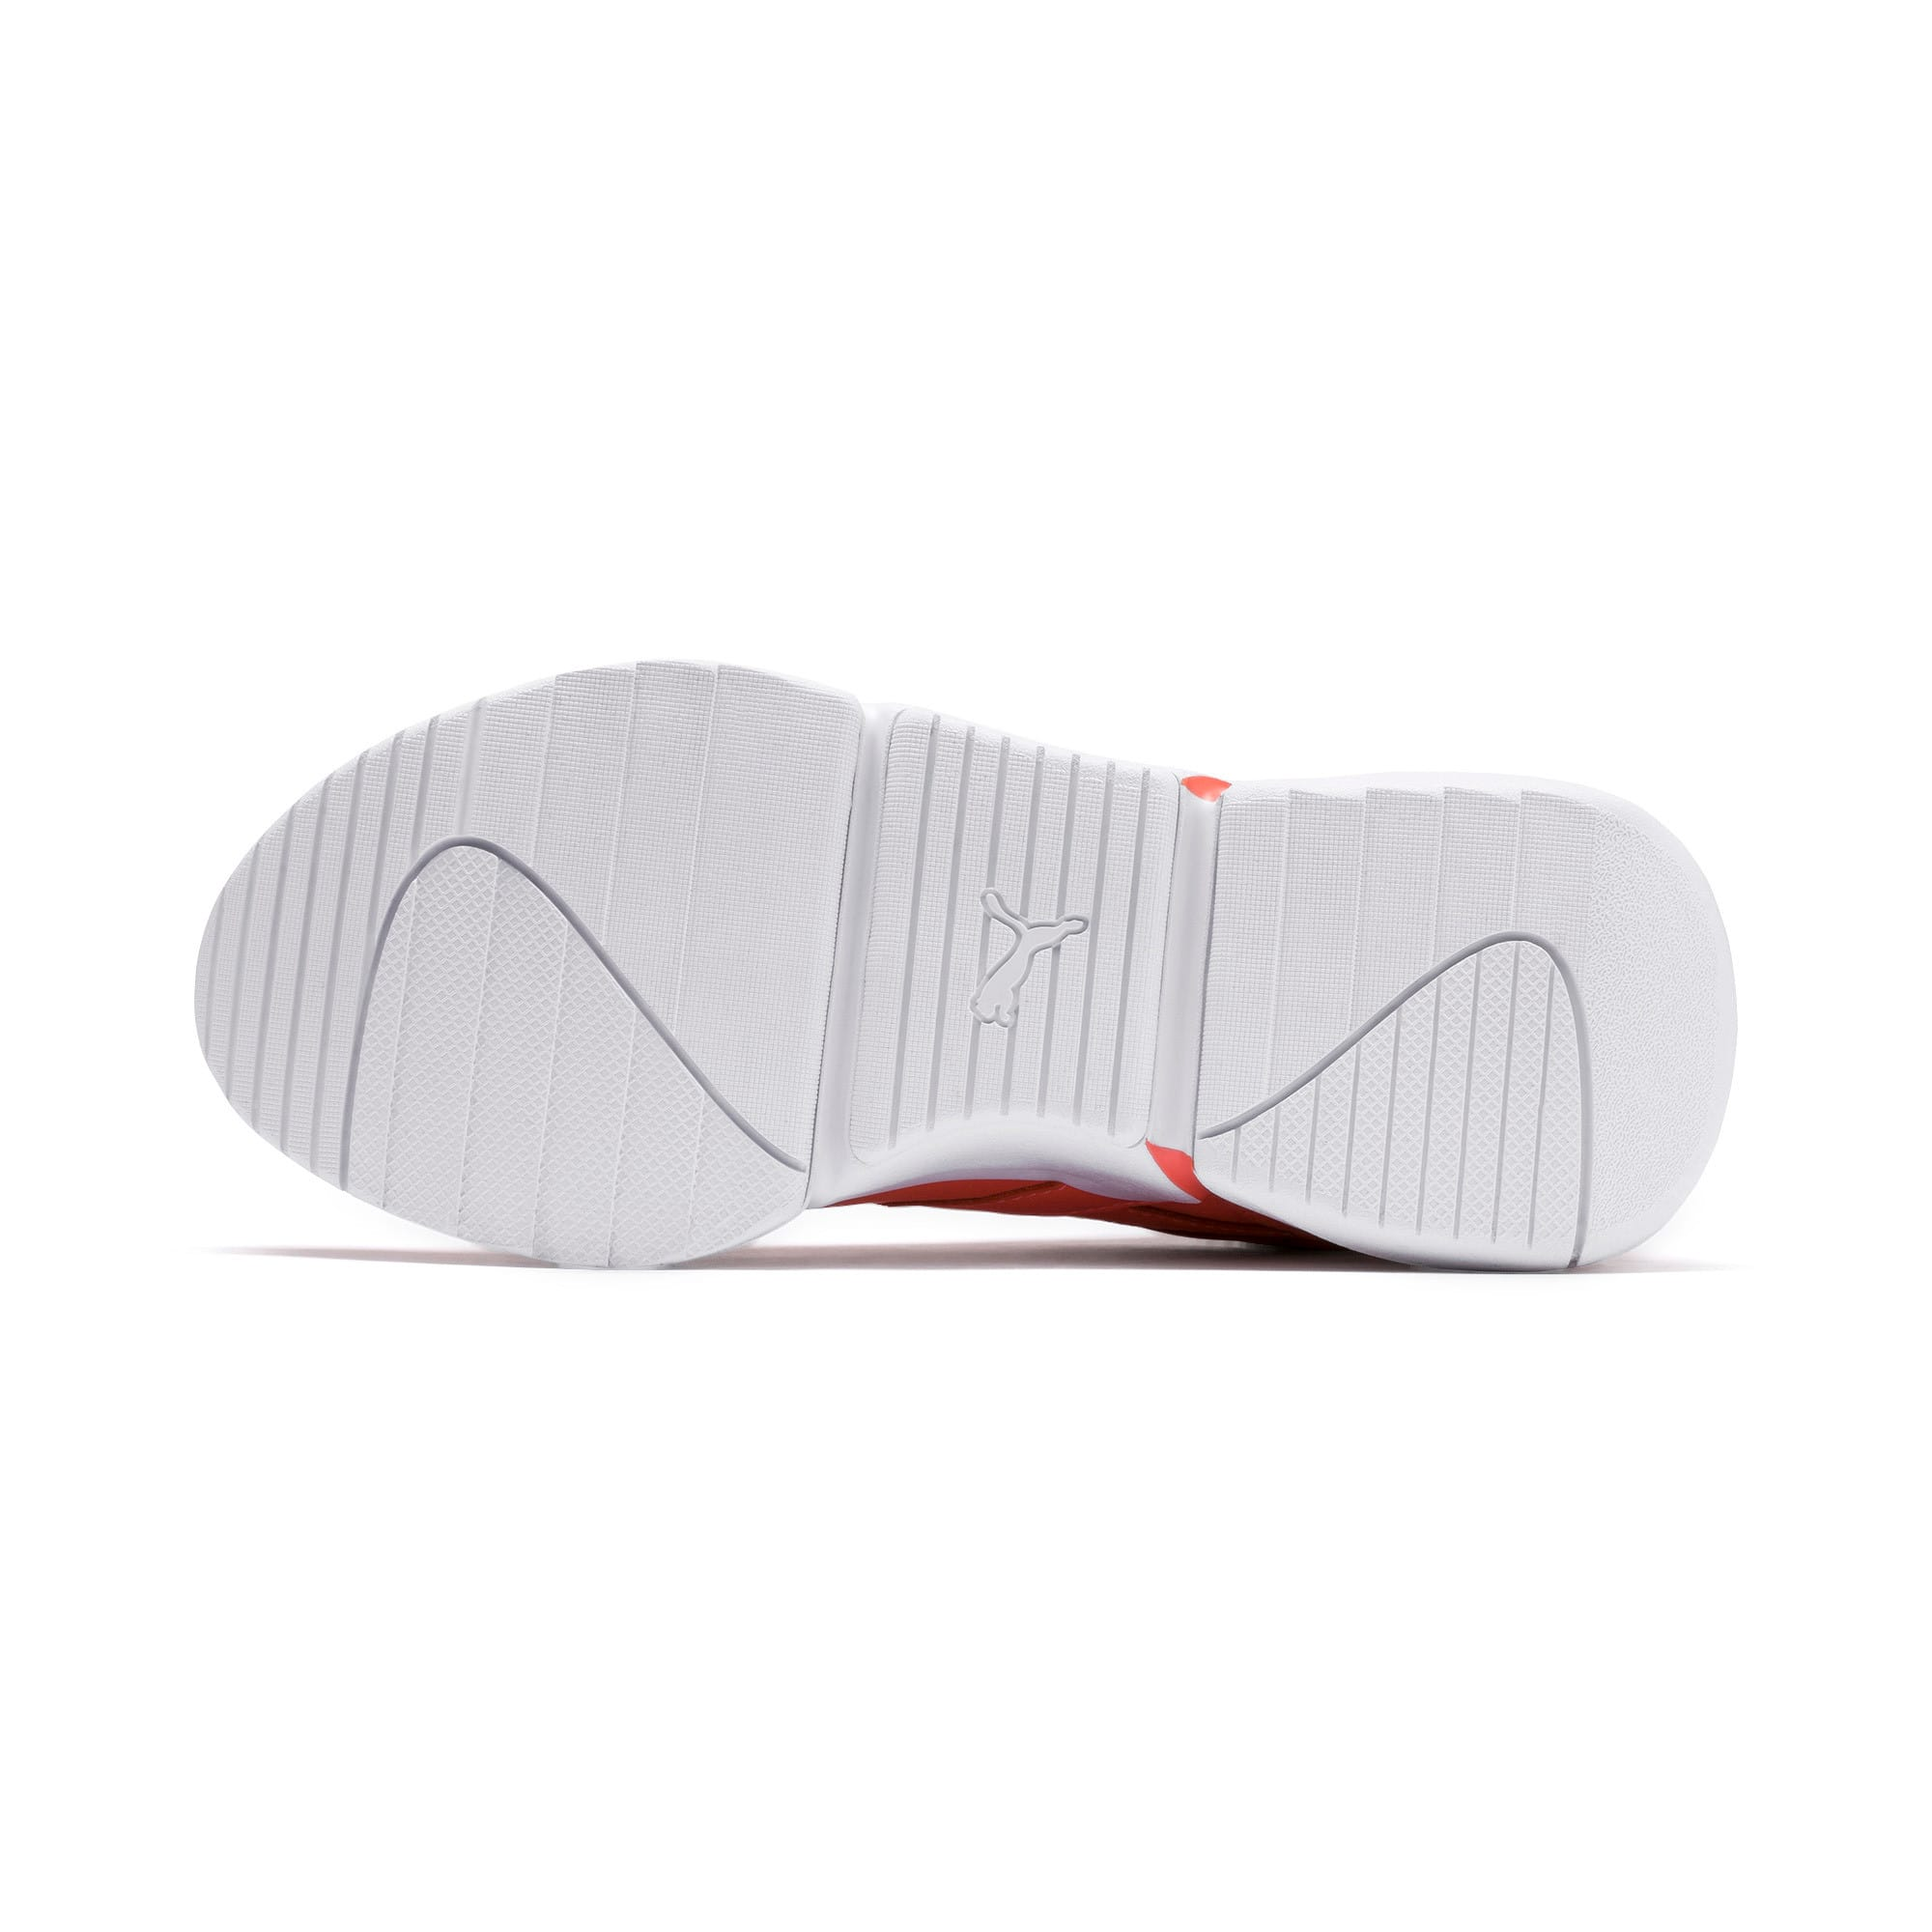 Thumbnail 4 of PUMA x PANTONE Nova Women's Trainers, Living Coral-Puma White, medium